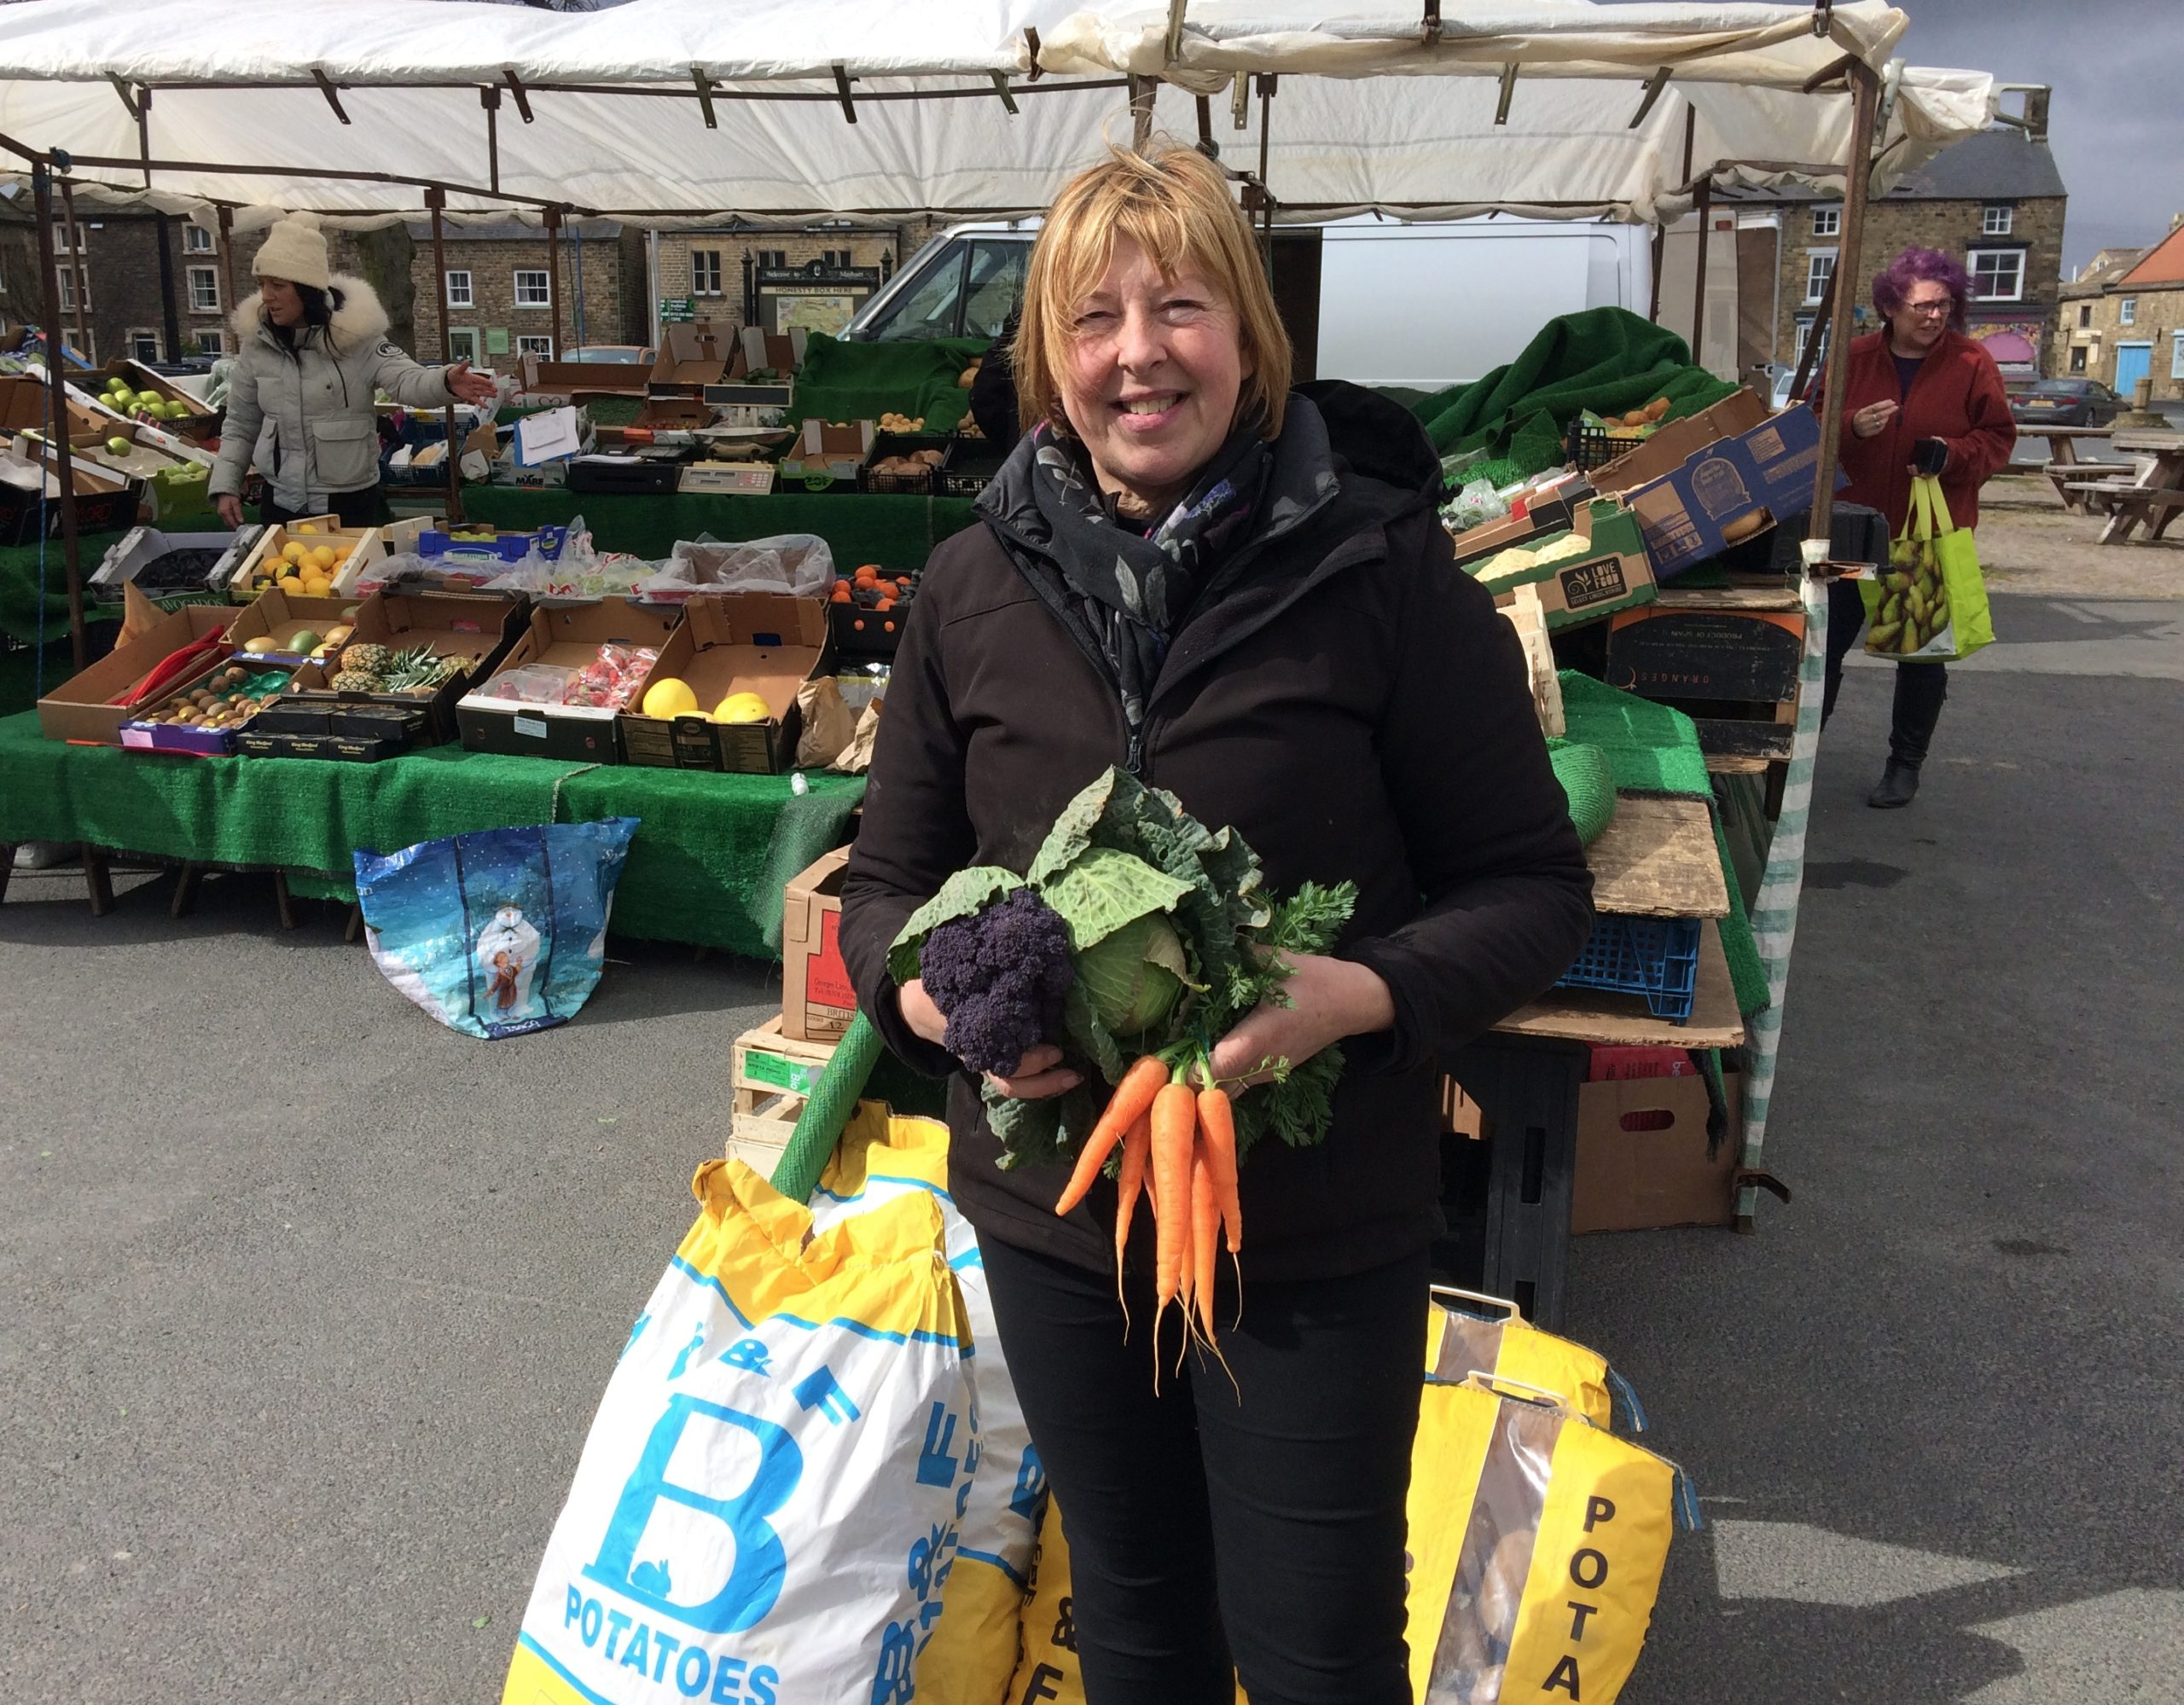 Masham stallholders plead with local people to support the town